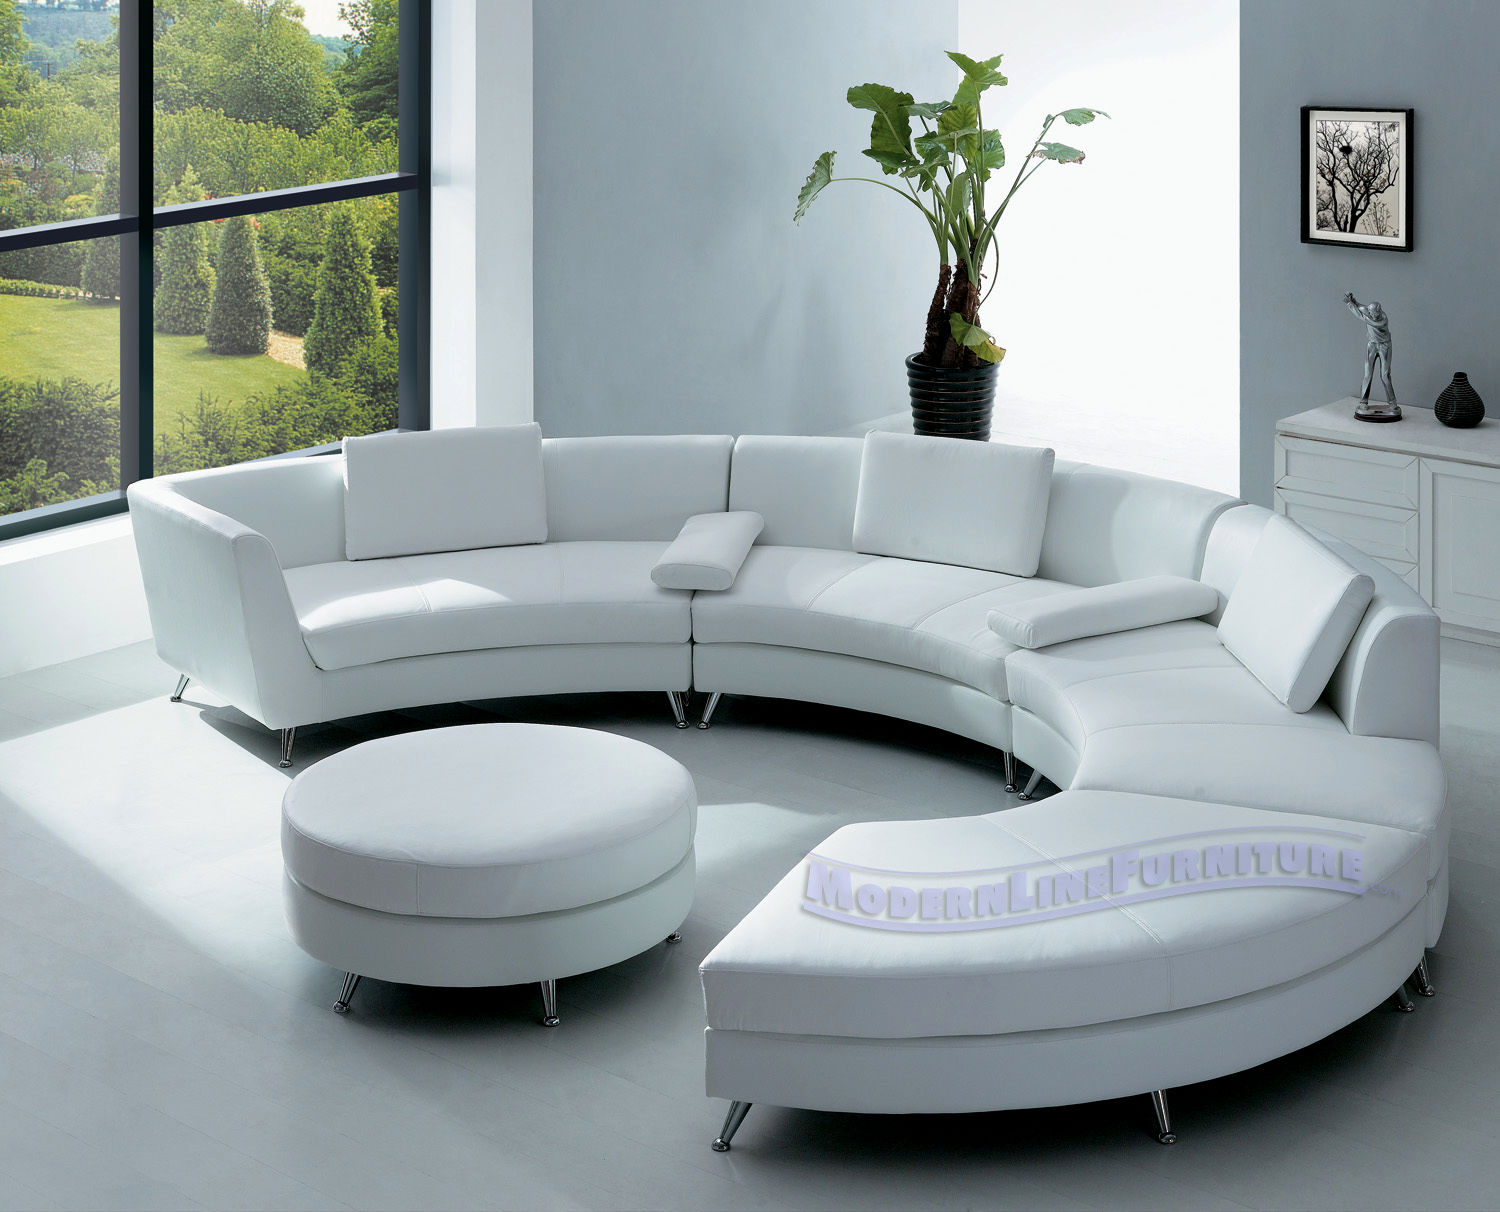 luxury raymour and flanigan sofa decoration-Beautiful Raymour and Flanigan sofa Portrait